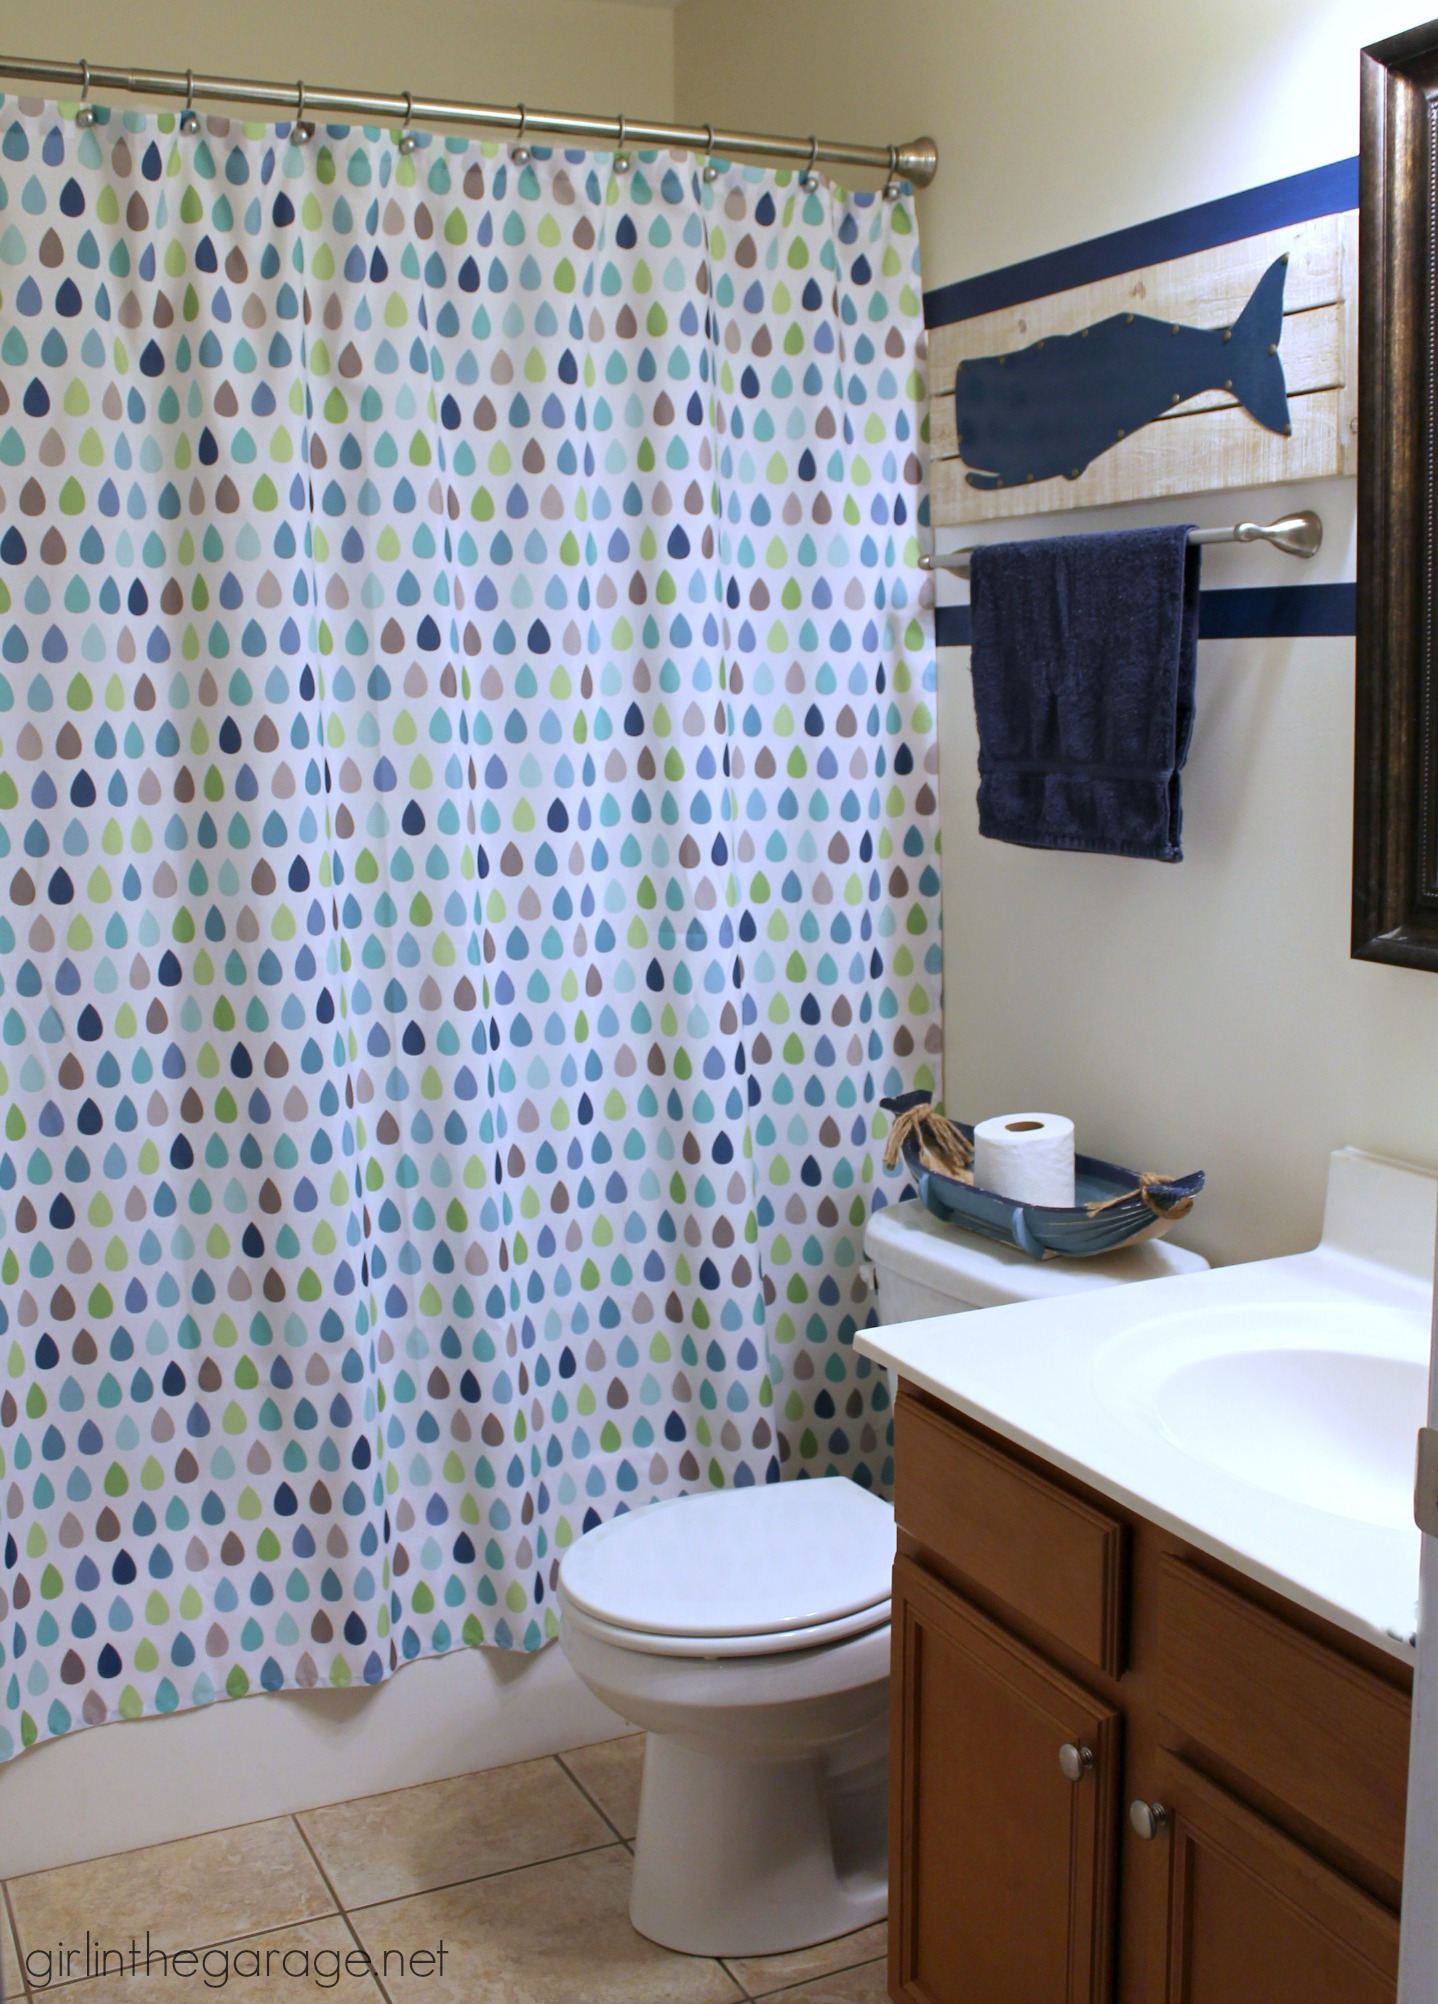 How to paint crisp stripes - Boys' bathroom makeover. Girl in the Garage